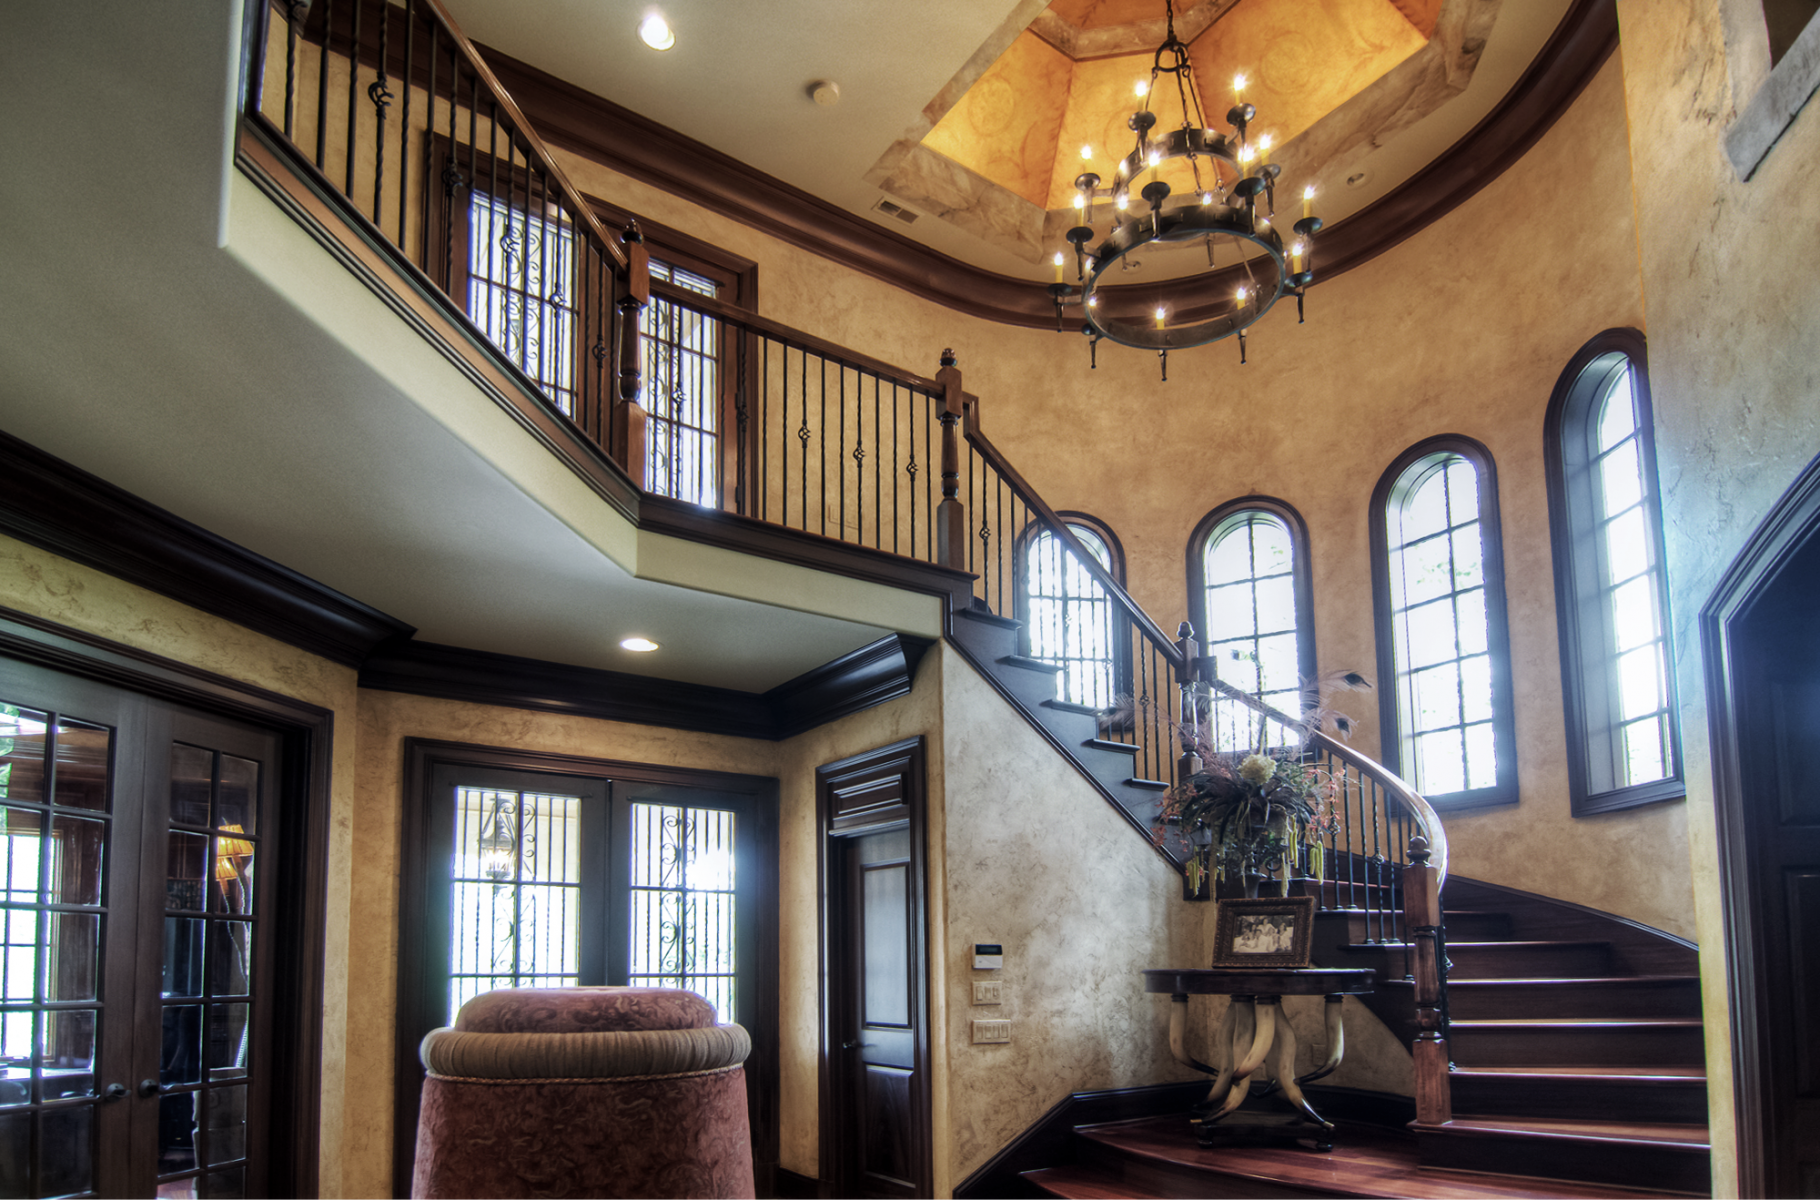 Faux Decor and United Artisans glazed woodwork, plaster color glazed walls ceiling mural